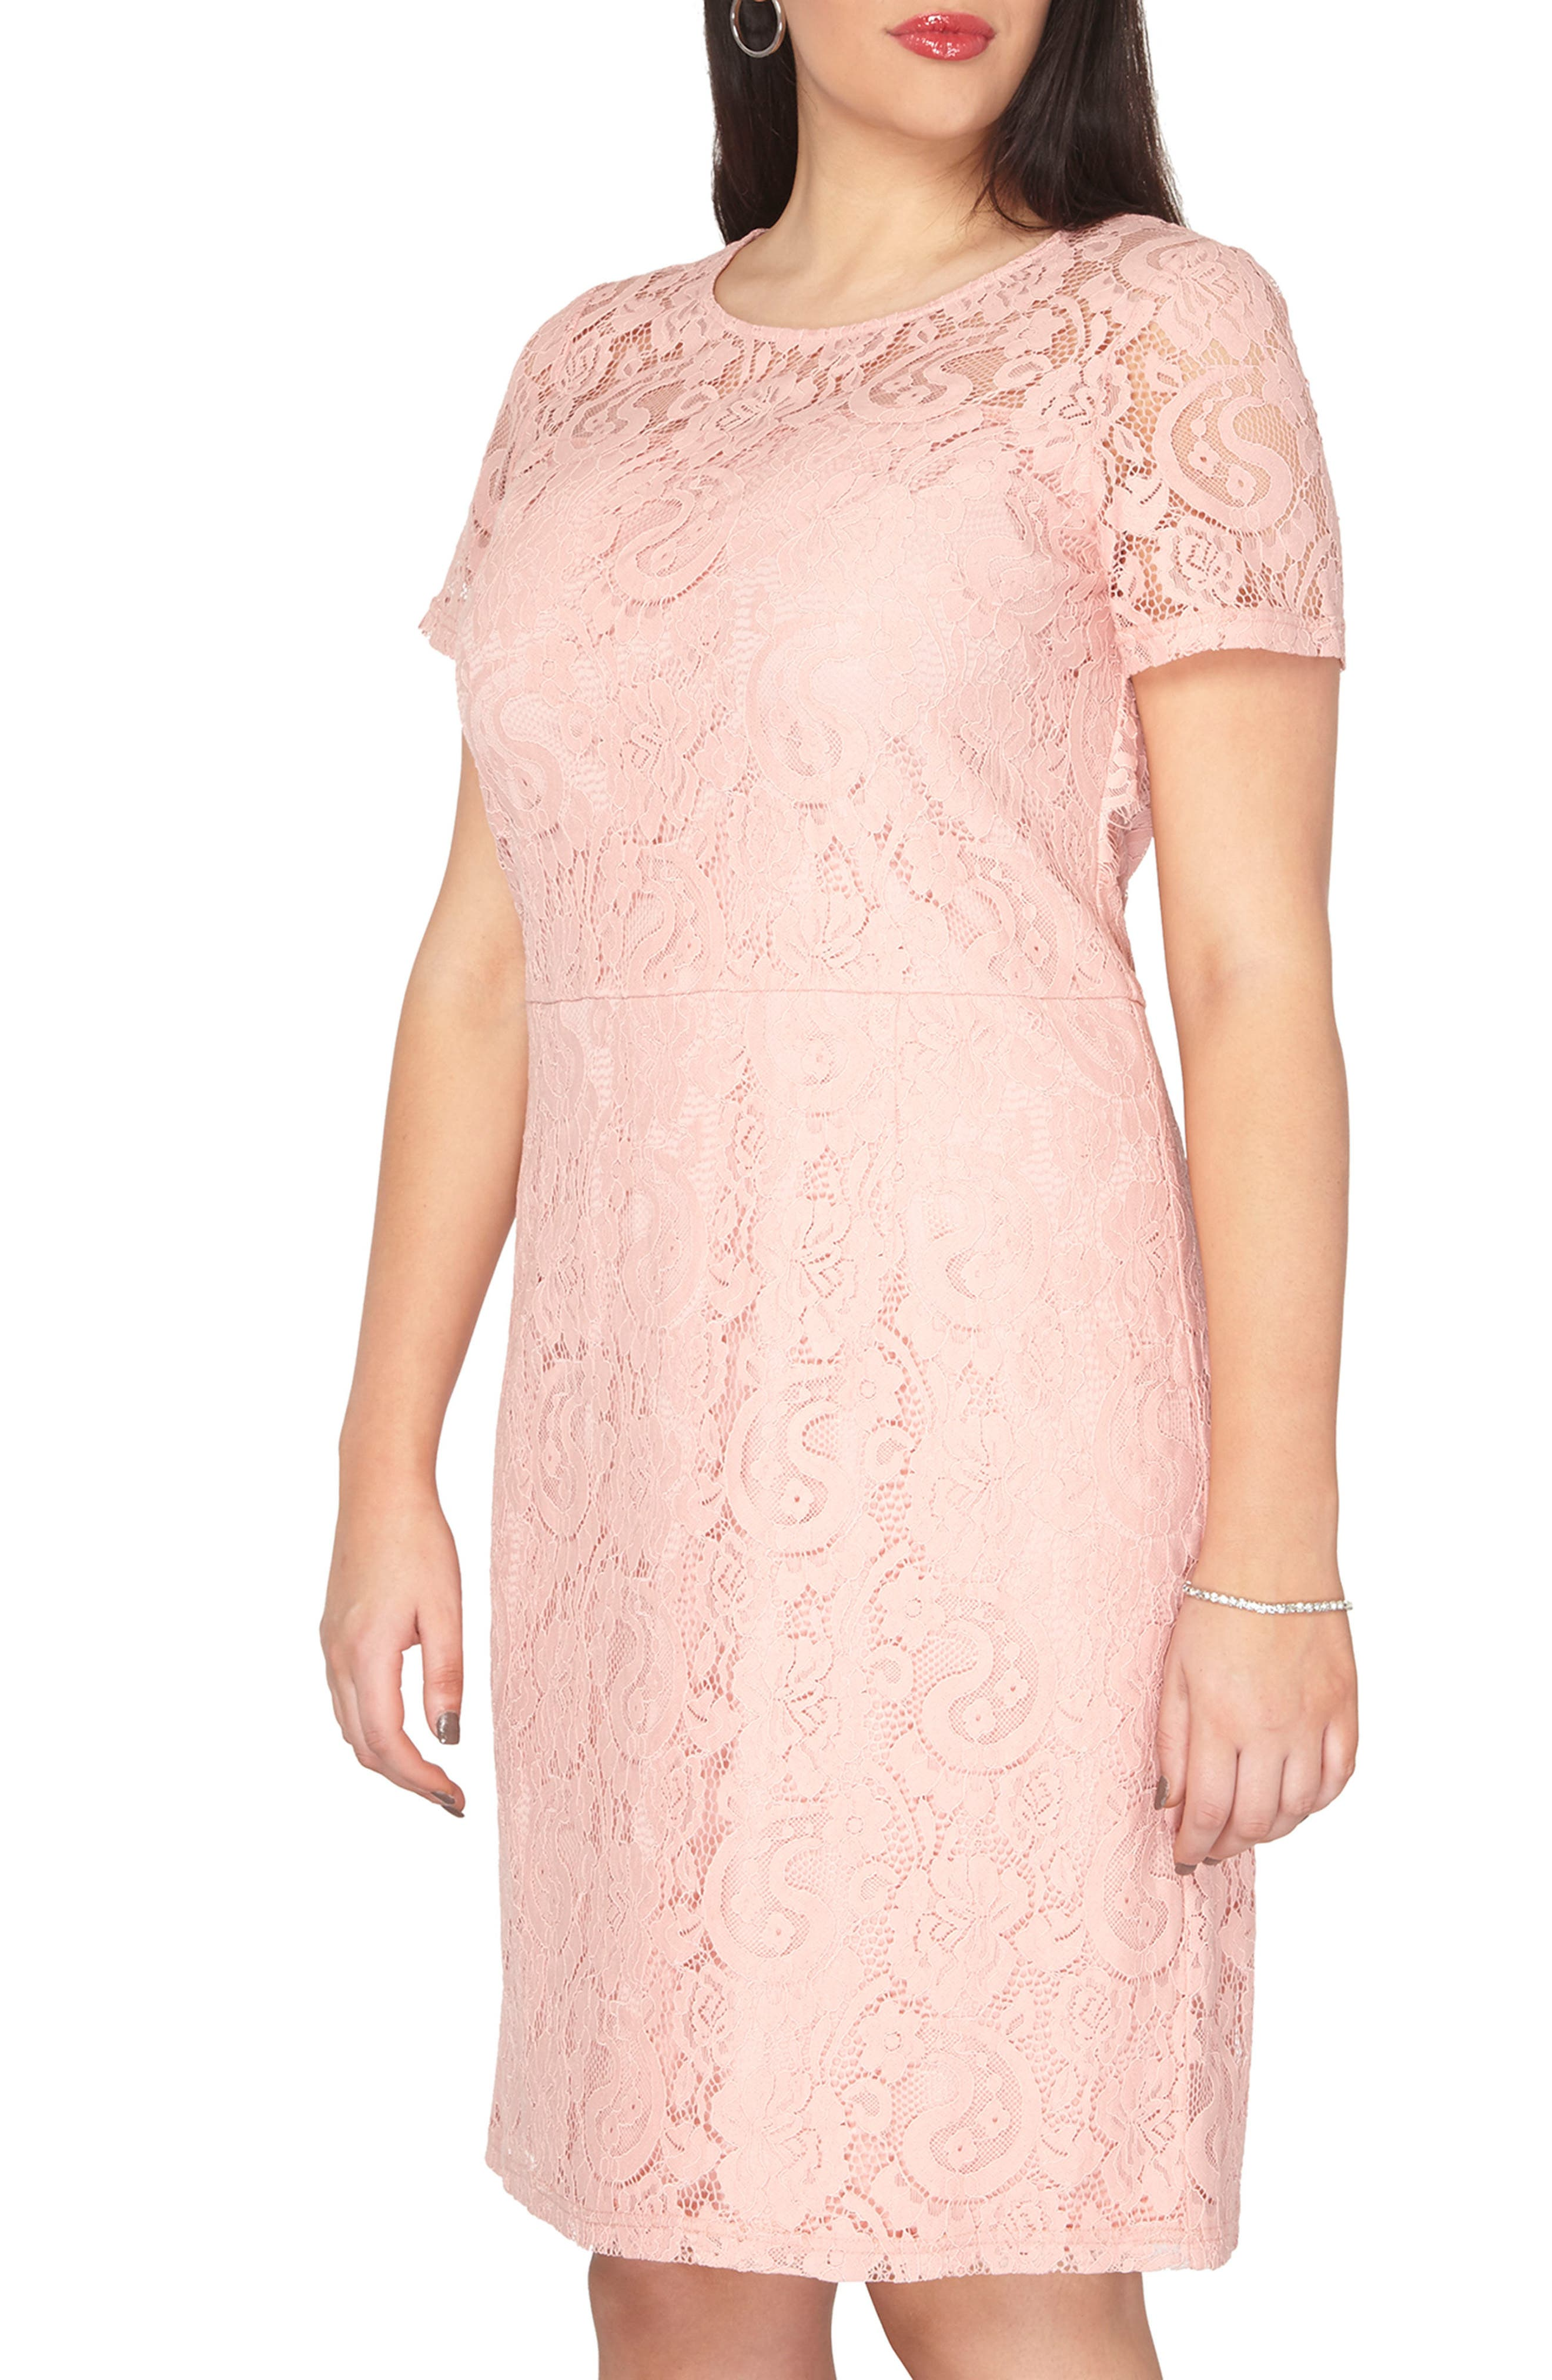 Dorothy Perkins Lace Sheath Dress (Plus Size)